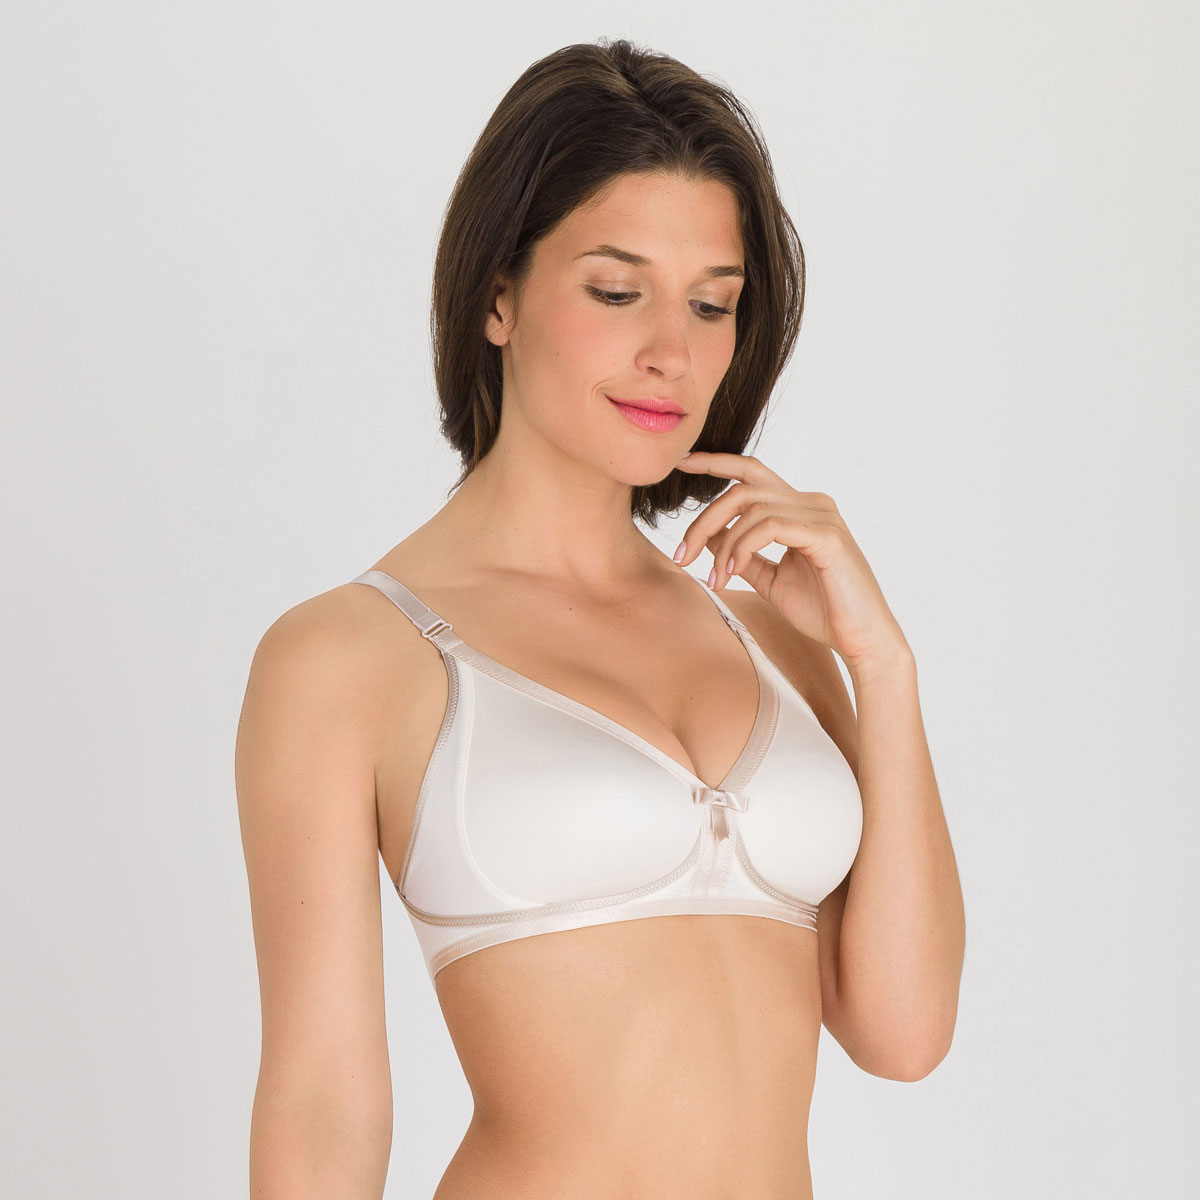 Reggiseno senza ferretto avorio - Ideal Beauty, , PLAYTEX